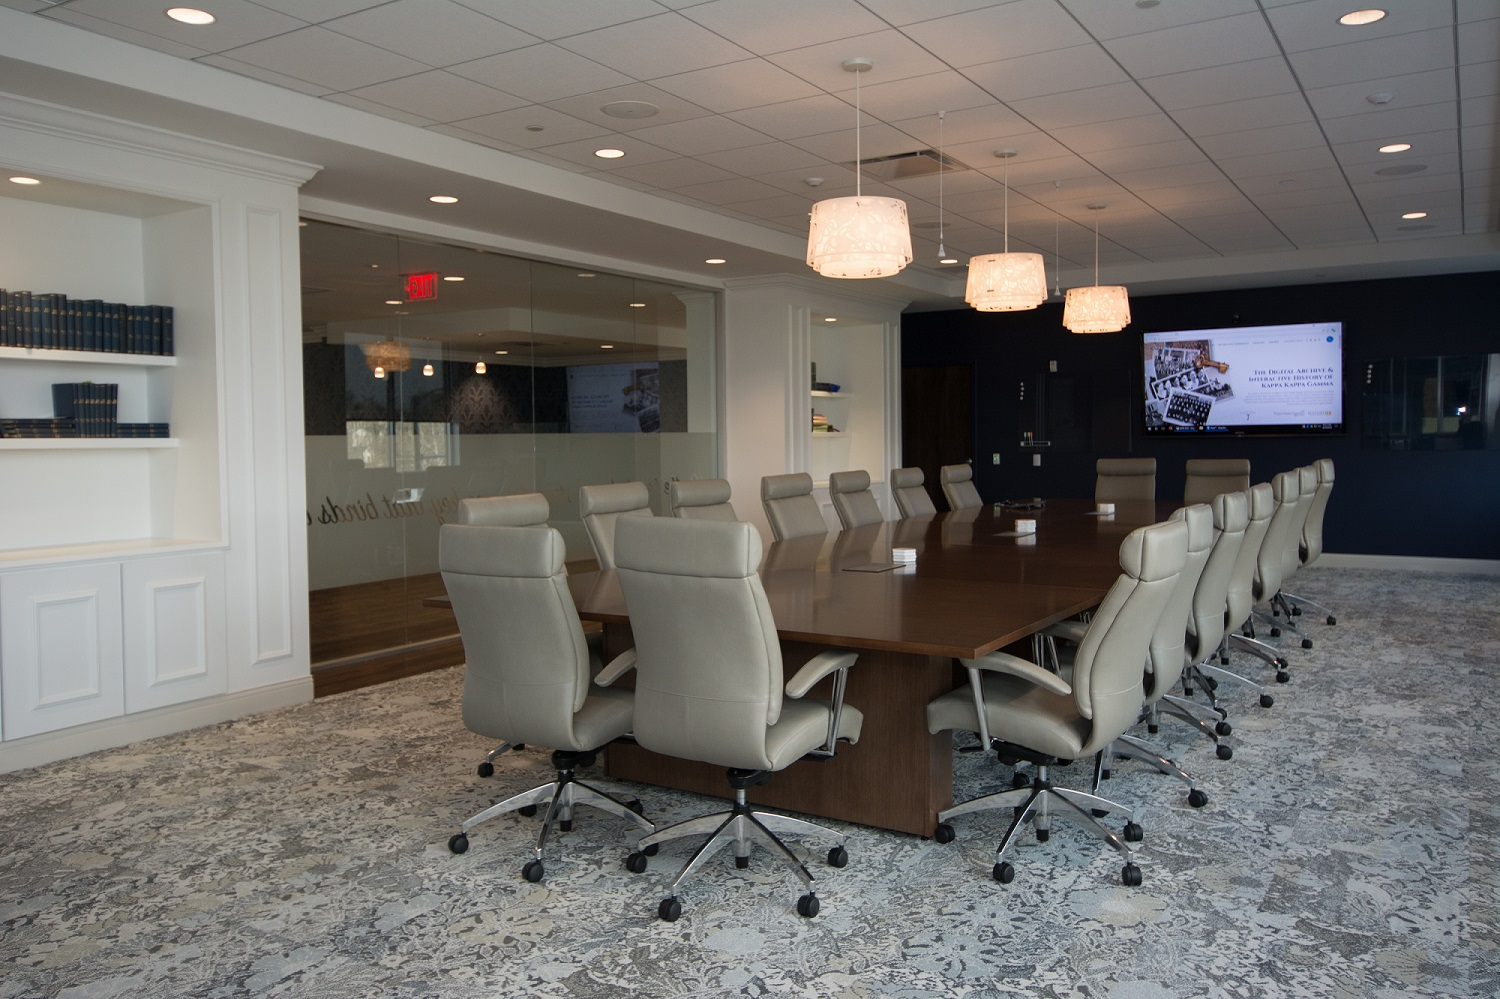 The board room features state-of-the-art technology for audio and video conferencing, including collaboration tools, discreet ceiling microphones, and touch-screen controllers.